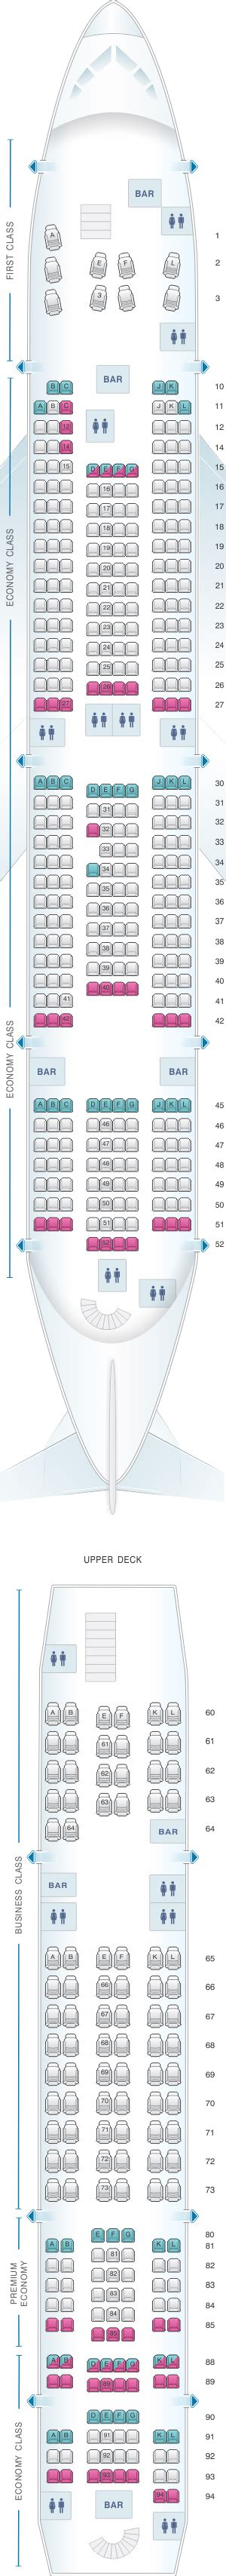 plan siege a380 air plan de cabine air airbus a380 international